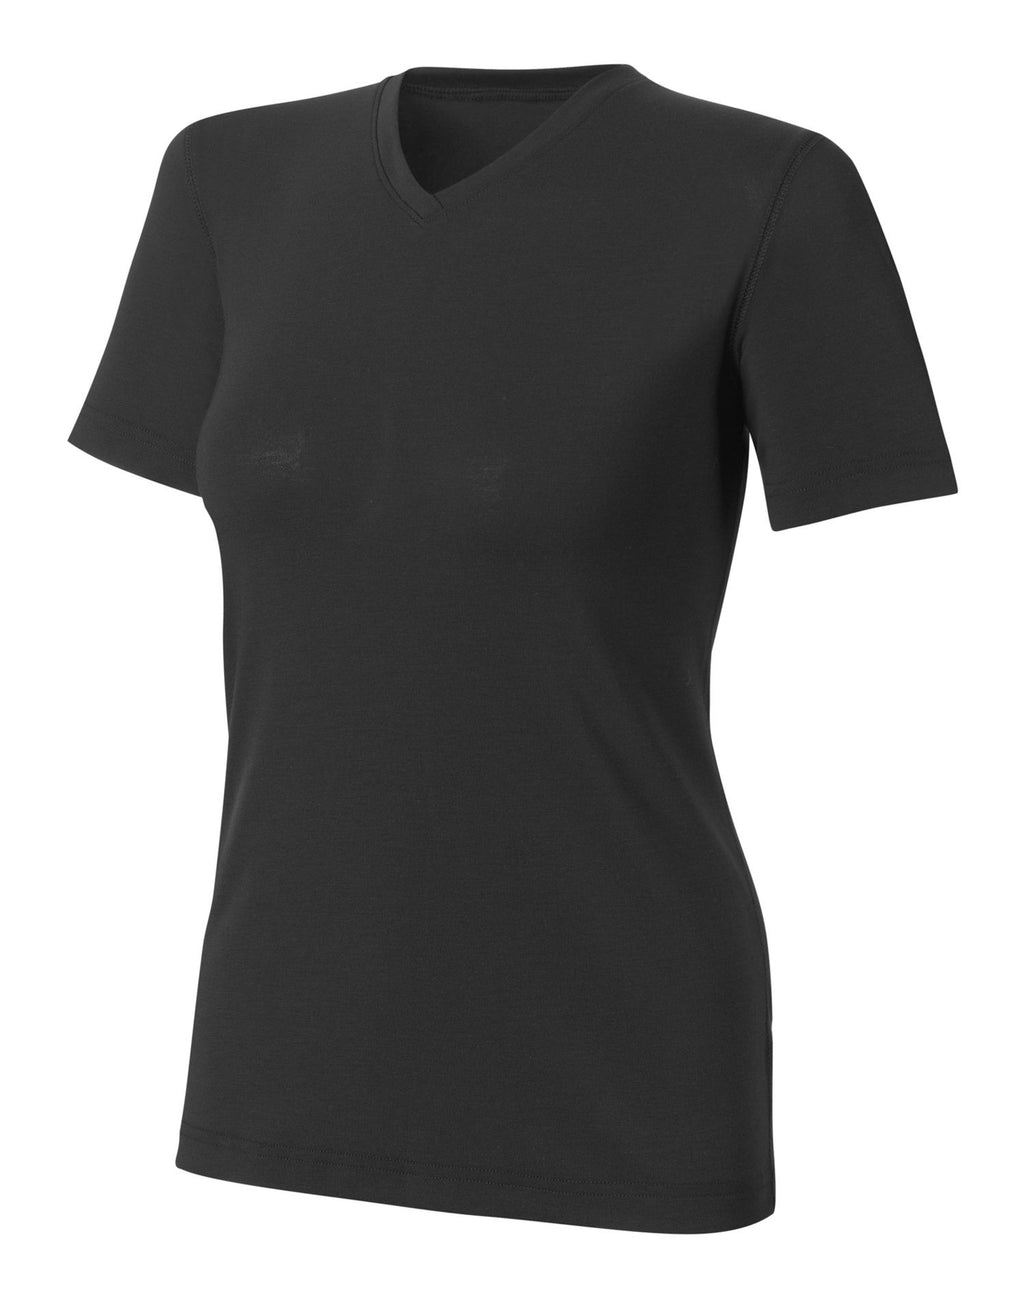 Duofold Varitherm Silk-Weight Short-Sleeve V-Neck Women's T Shirt